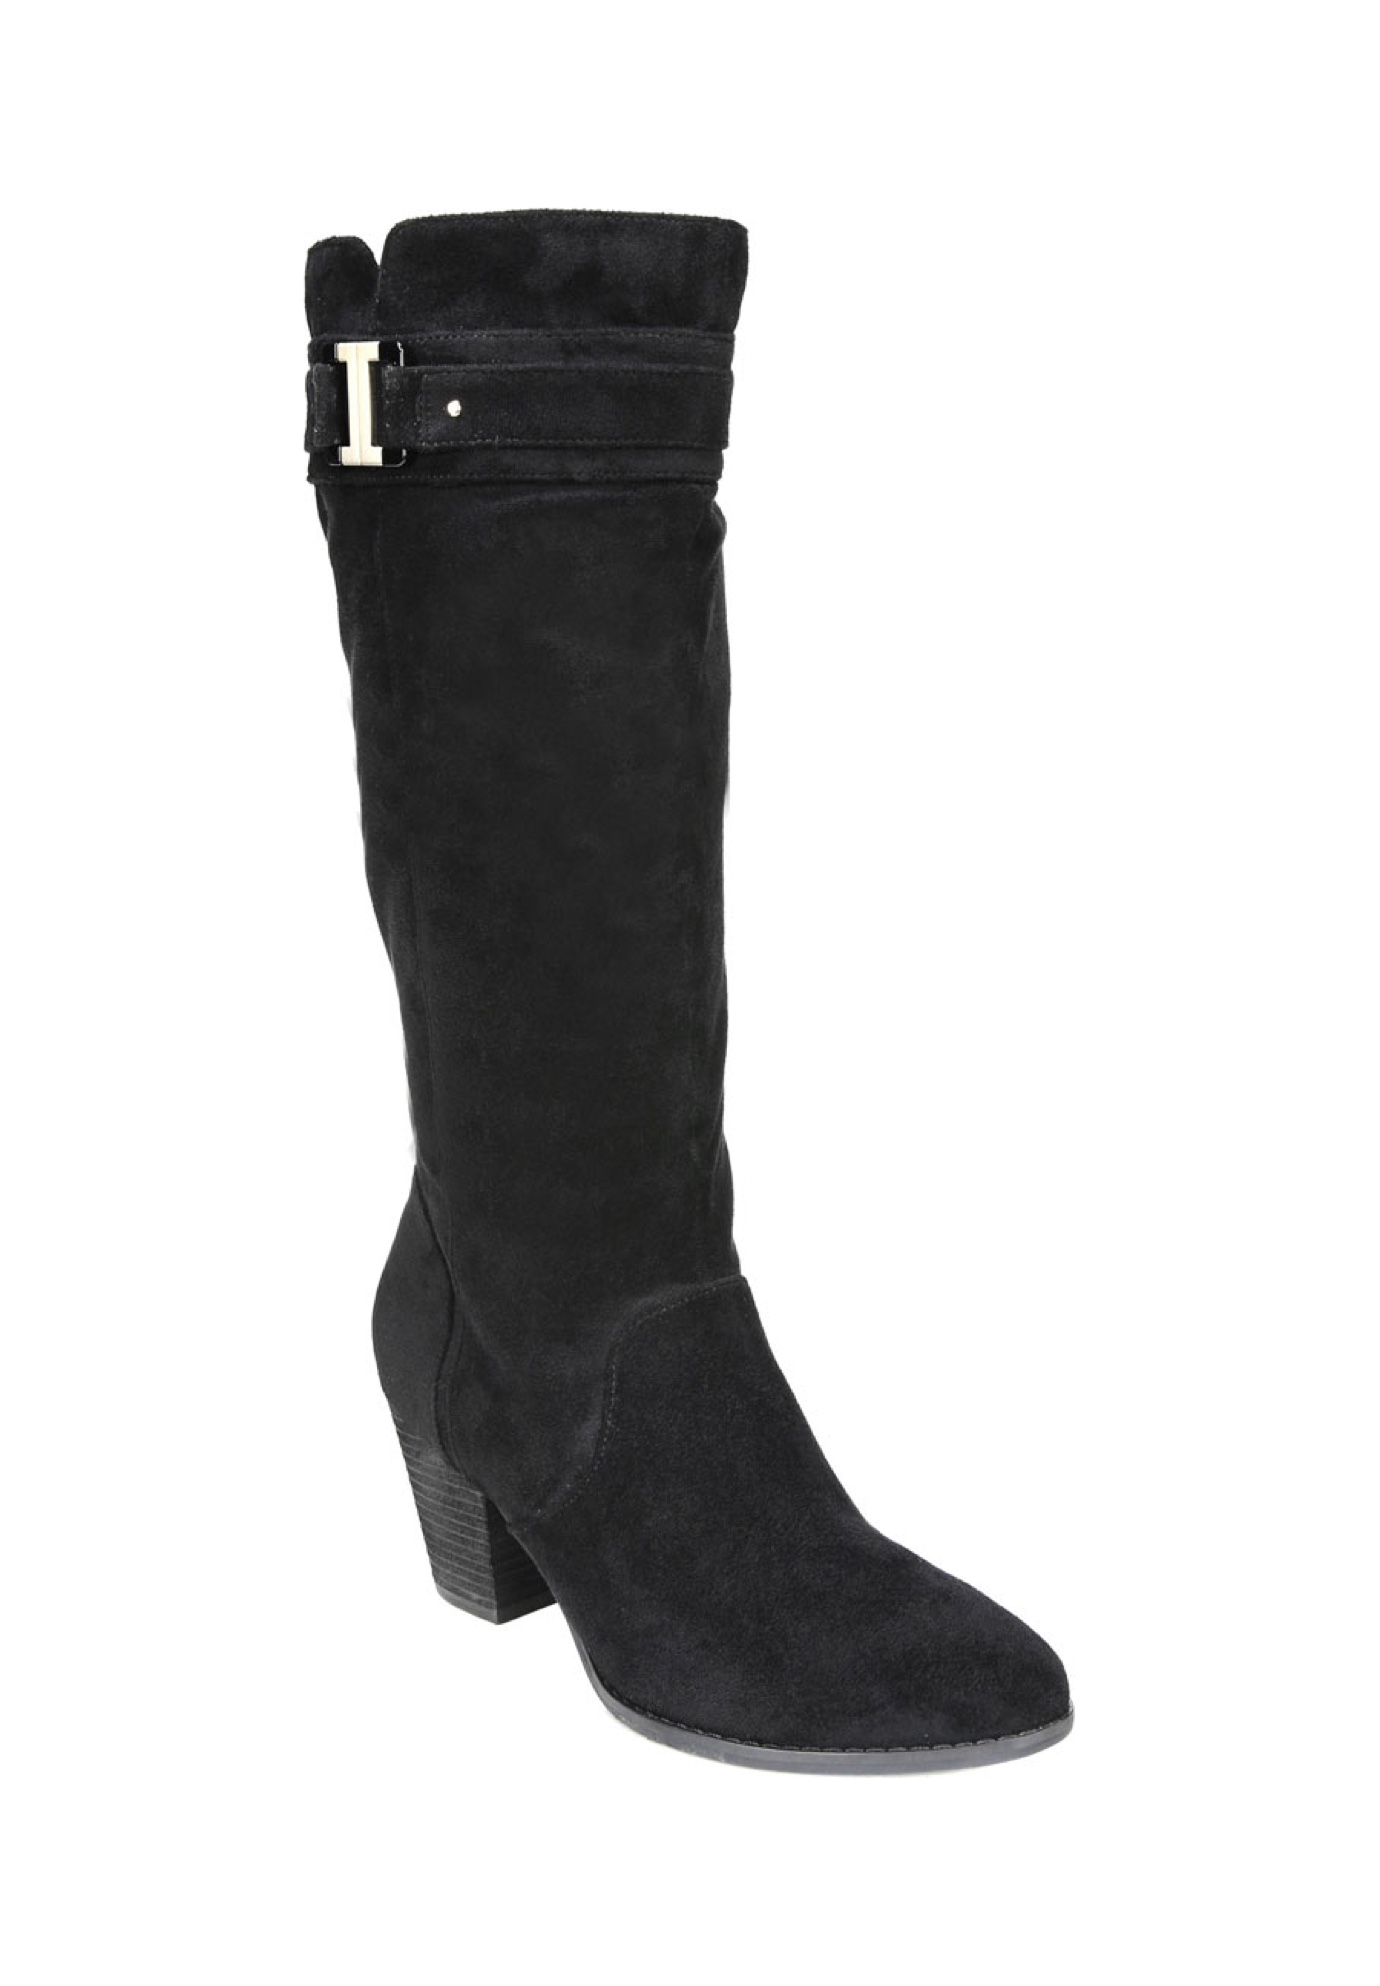 Devote WC Wide Calf Boot by Dr. Scholl's,